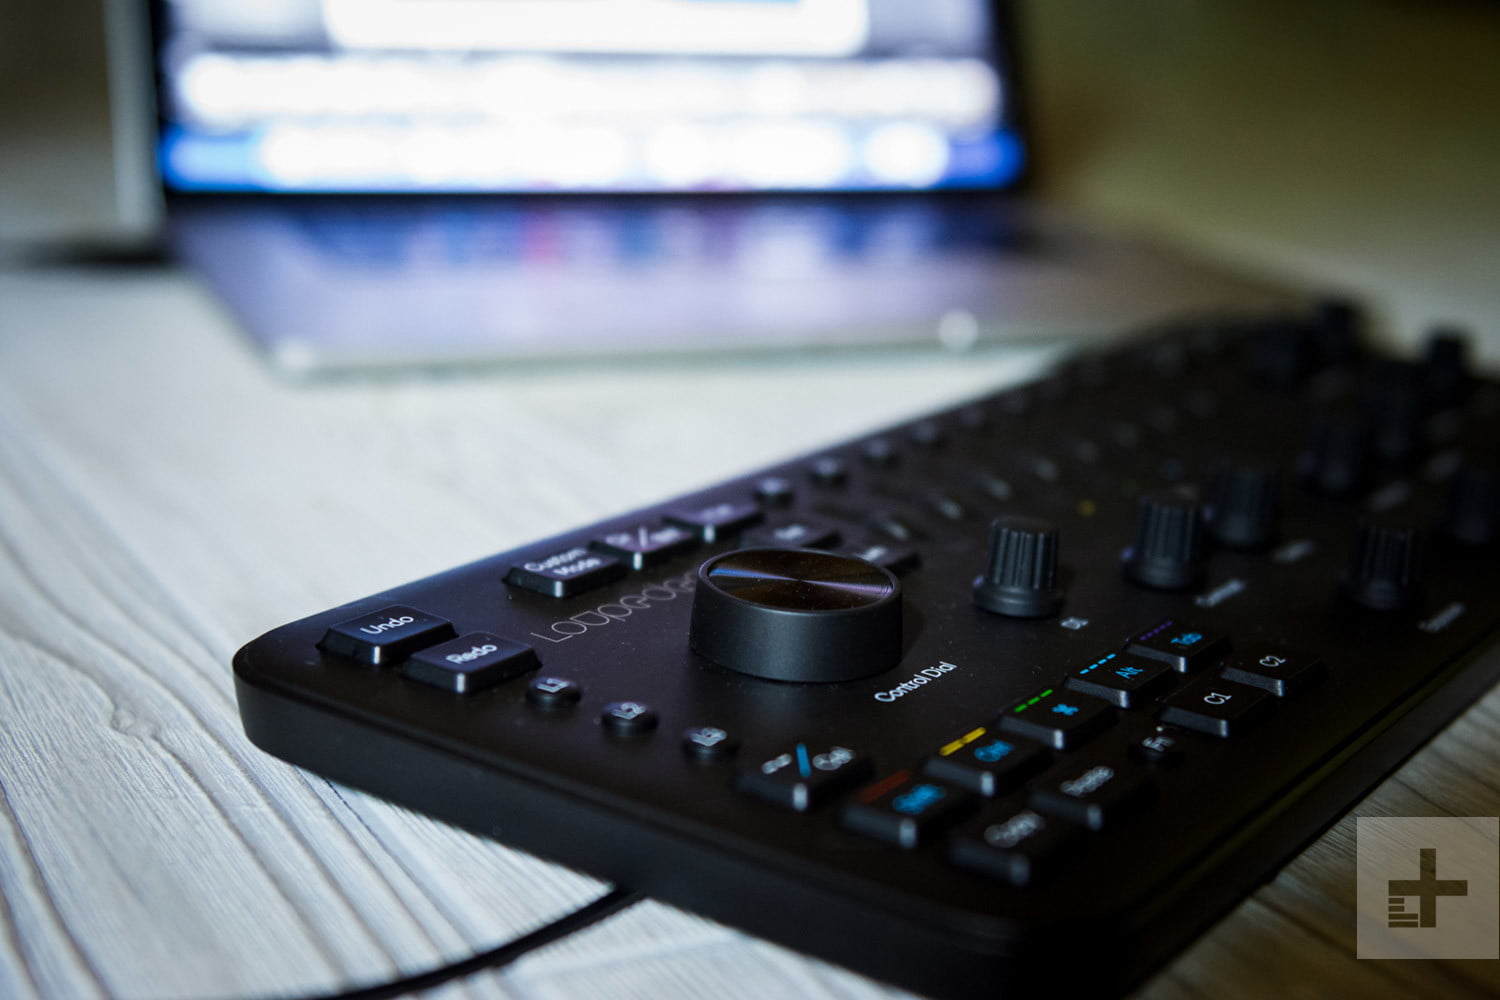 Not just for Lightroom anymore, Loupedeck+ now works with Photoshop